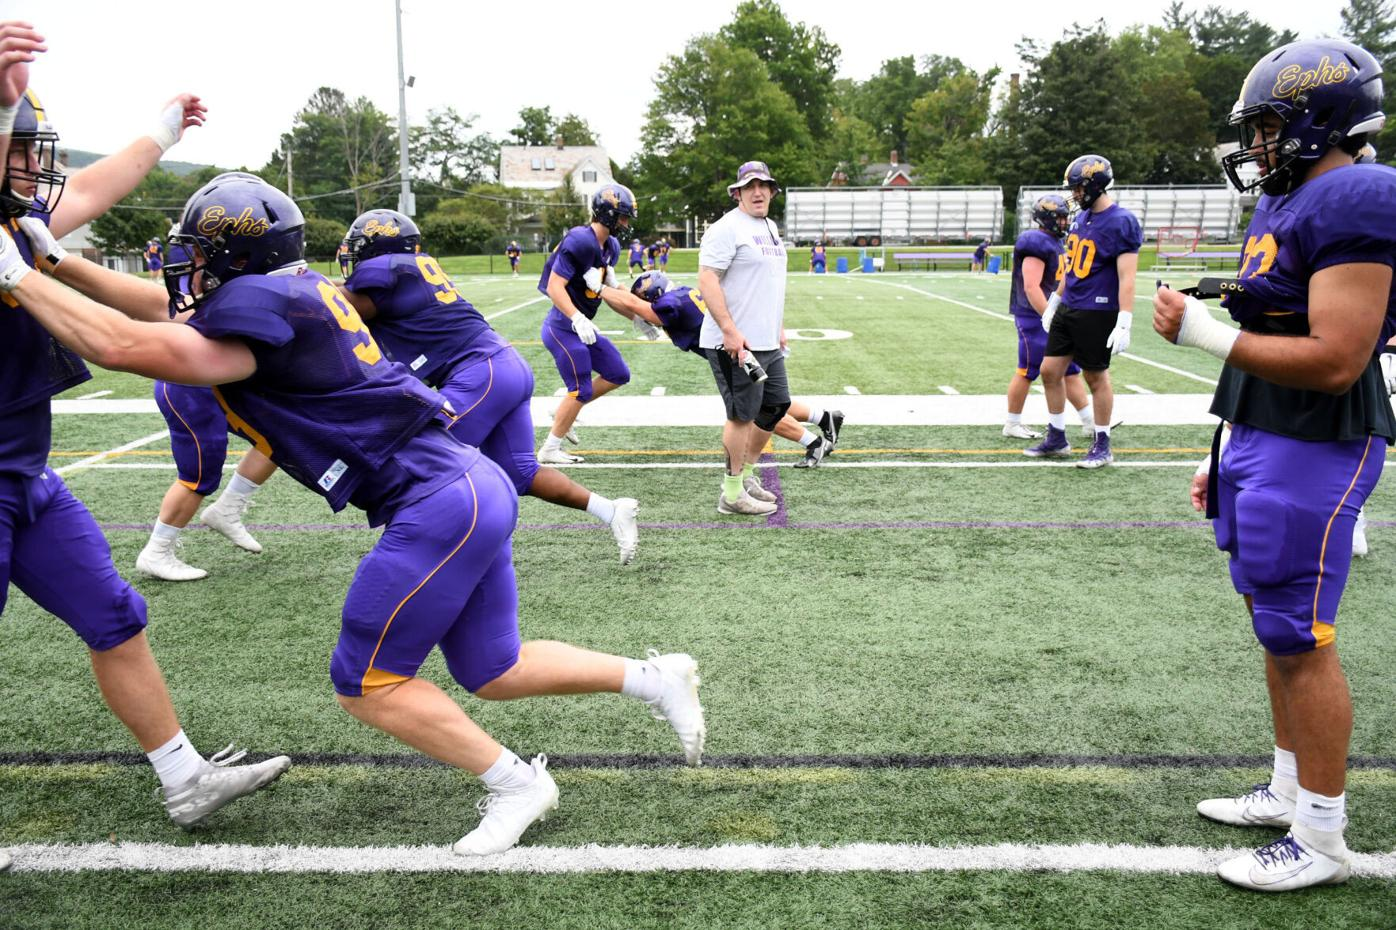 Williams College Football players practice